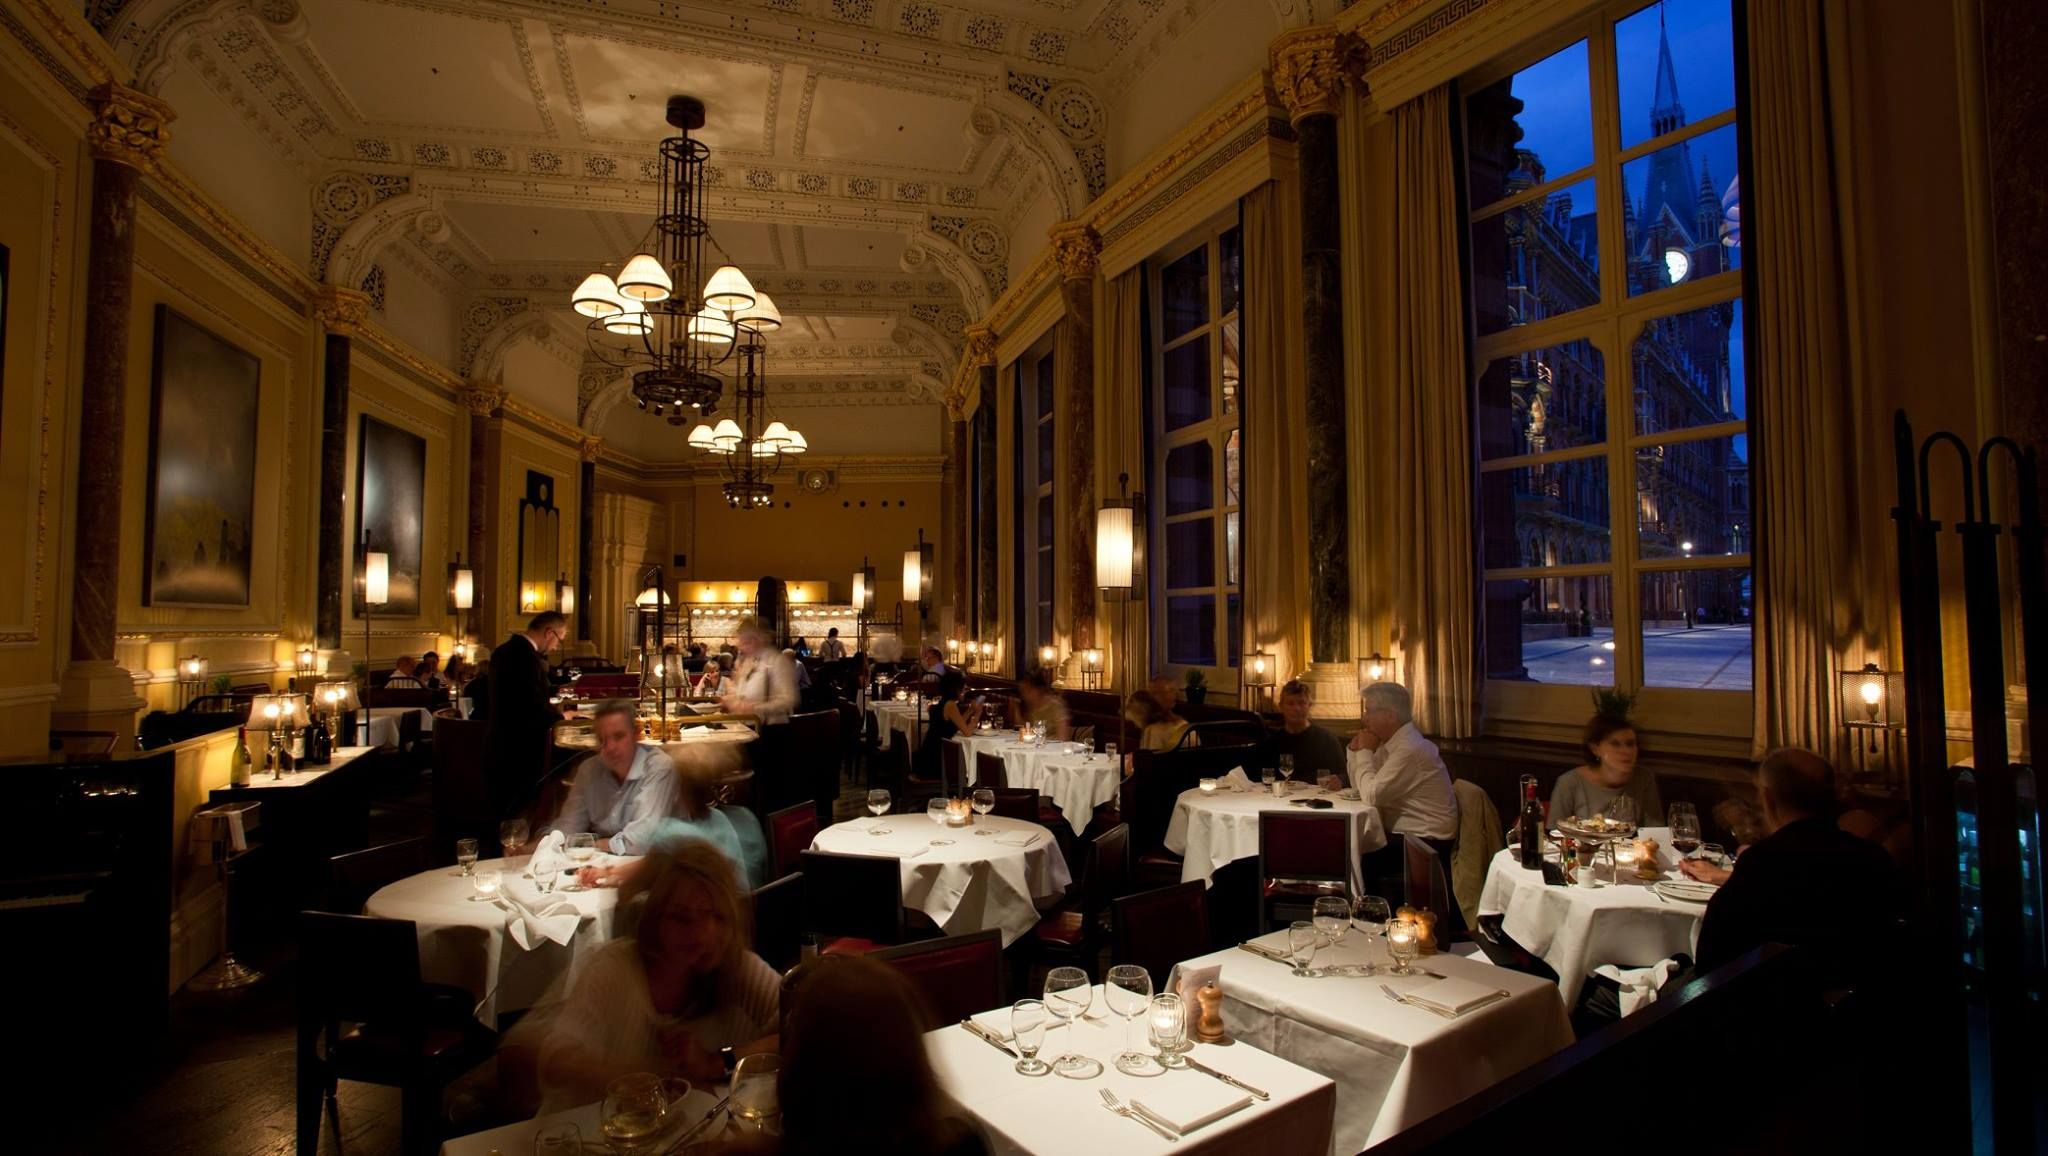 Whether for a business meeting, a romantic meal, or quality time away from the hustle and bustle, The Gilbert Scott should be the first stop. This is a restaurant that lets guests truly relax whilst dining and discussing within sophisticated and intricate surroundings.